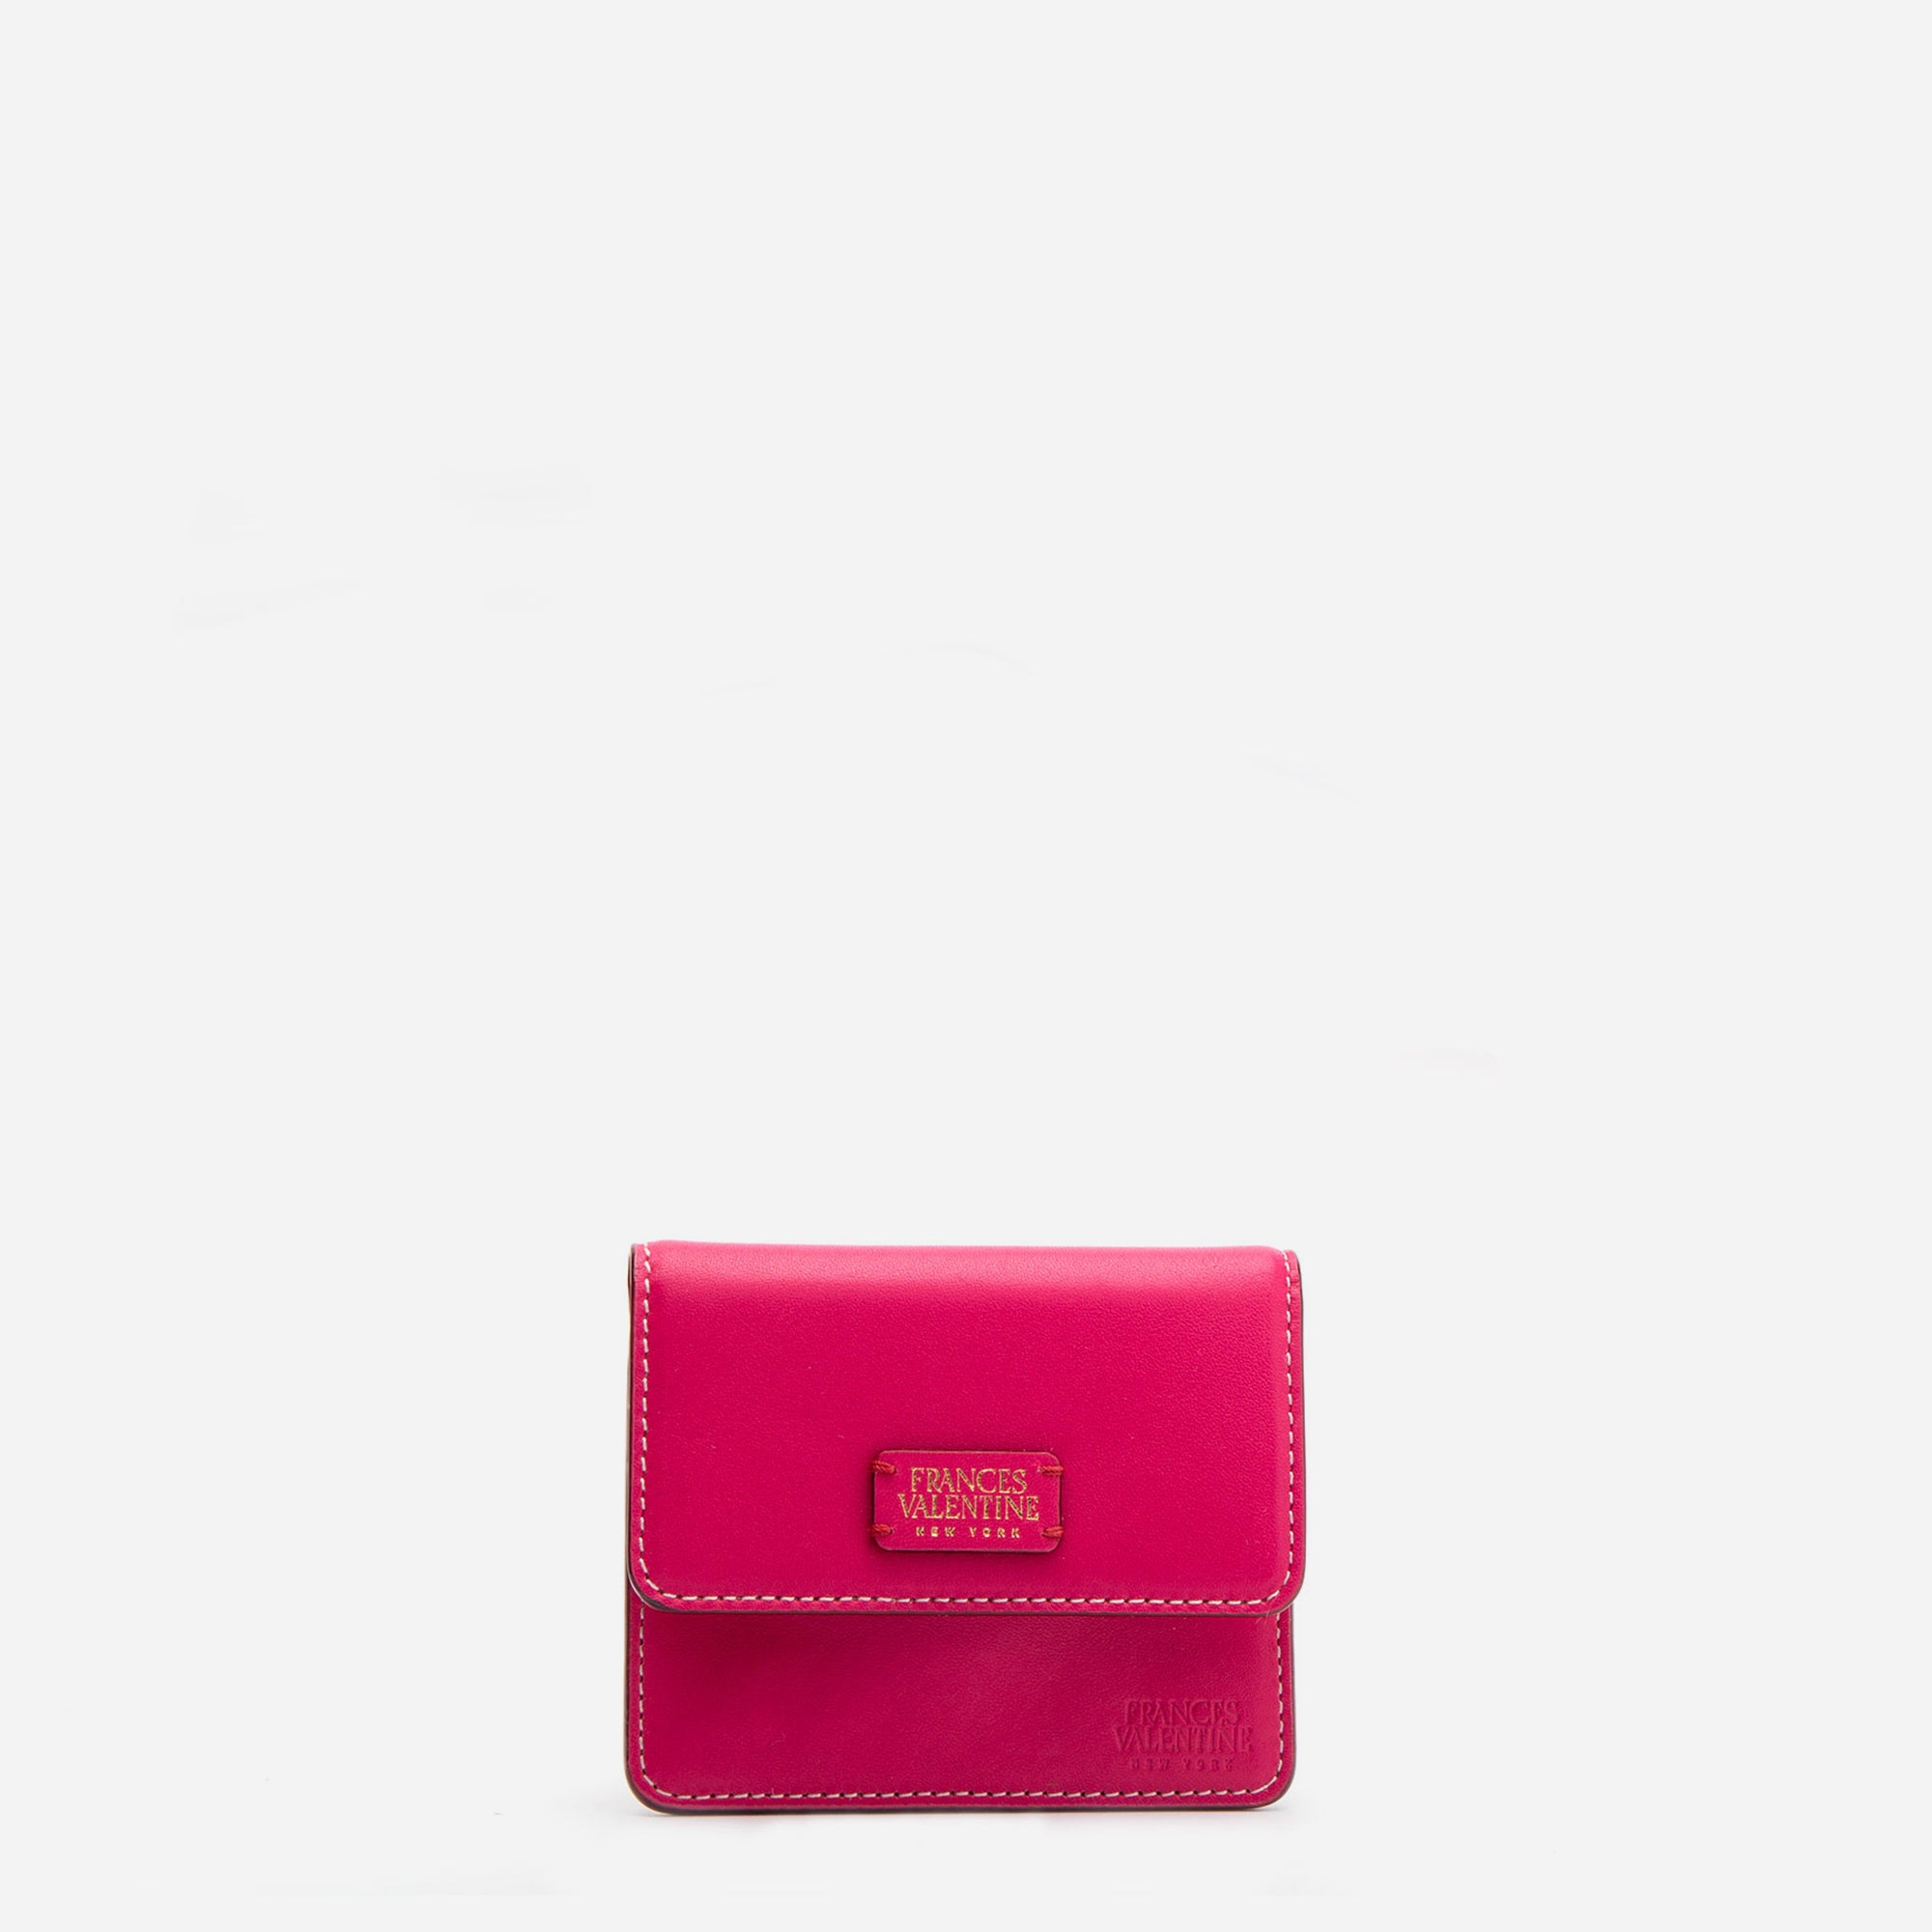 Susan B. Anthony Wallet Pink Red - Frances Valentine